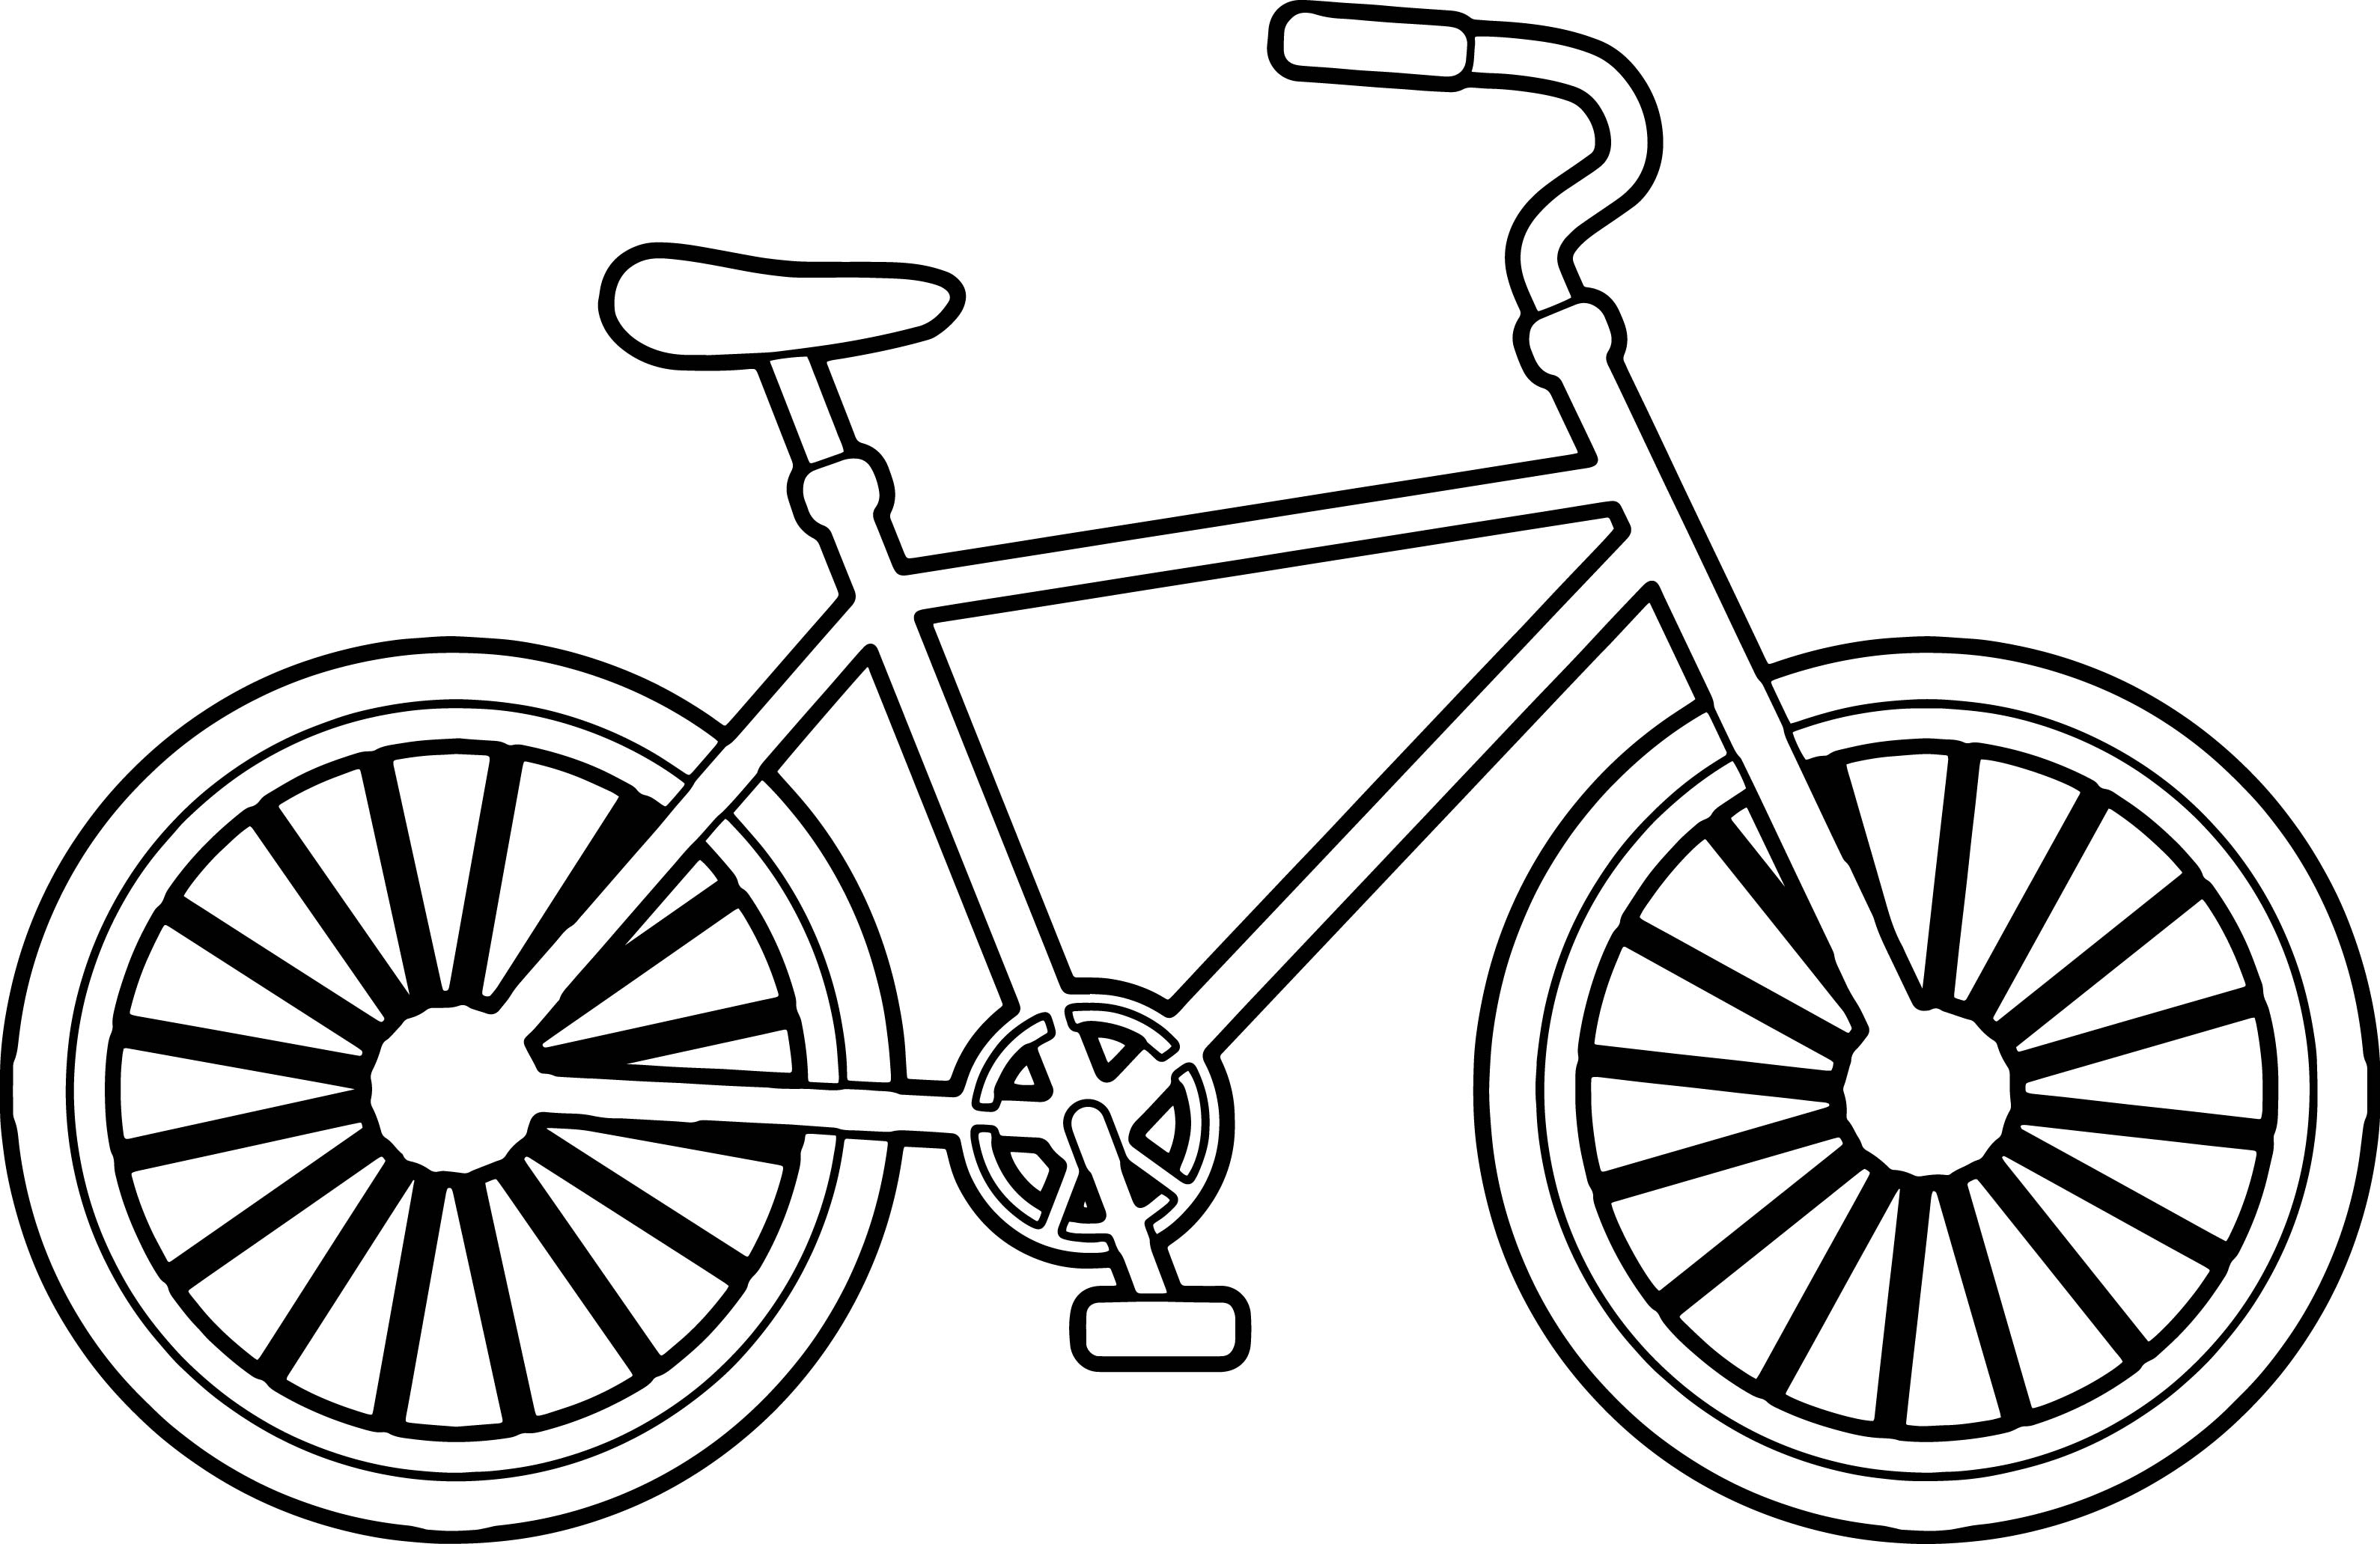 Simple Bike Biycle Coloring Page